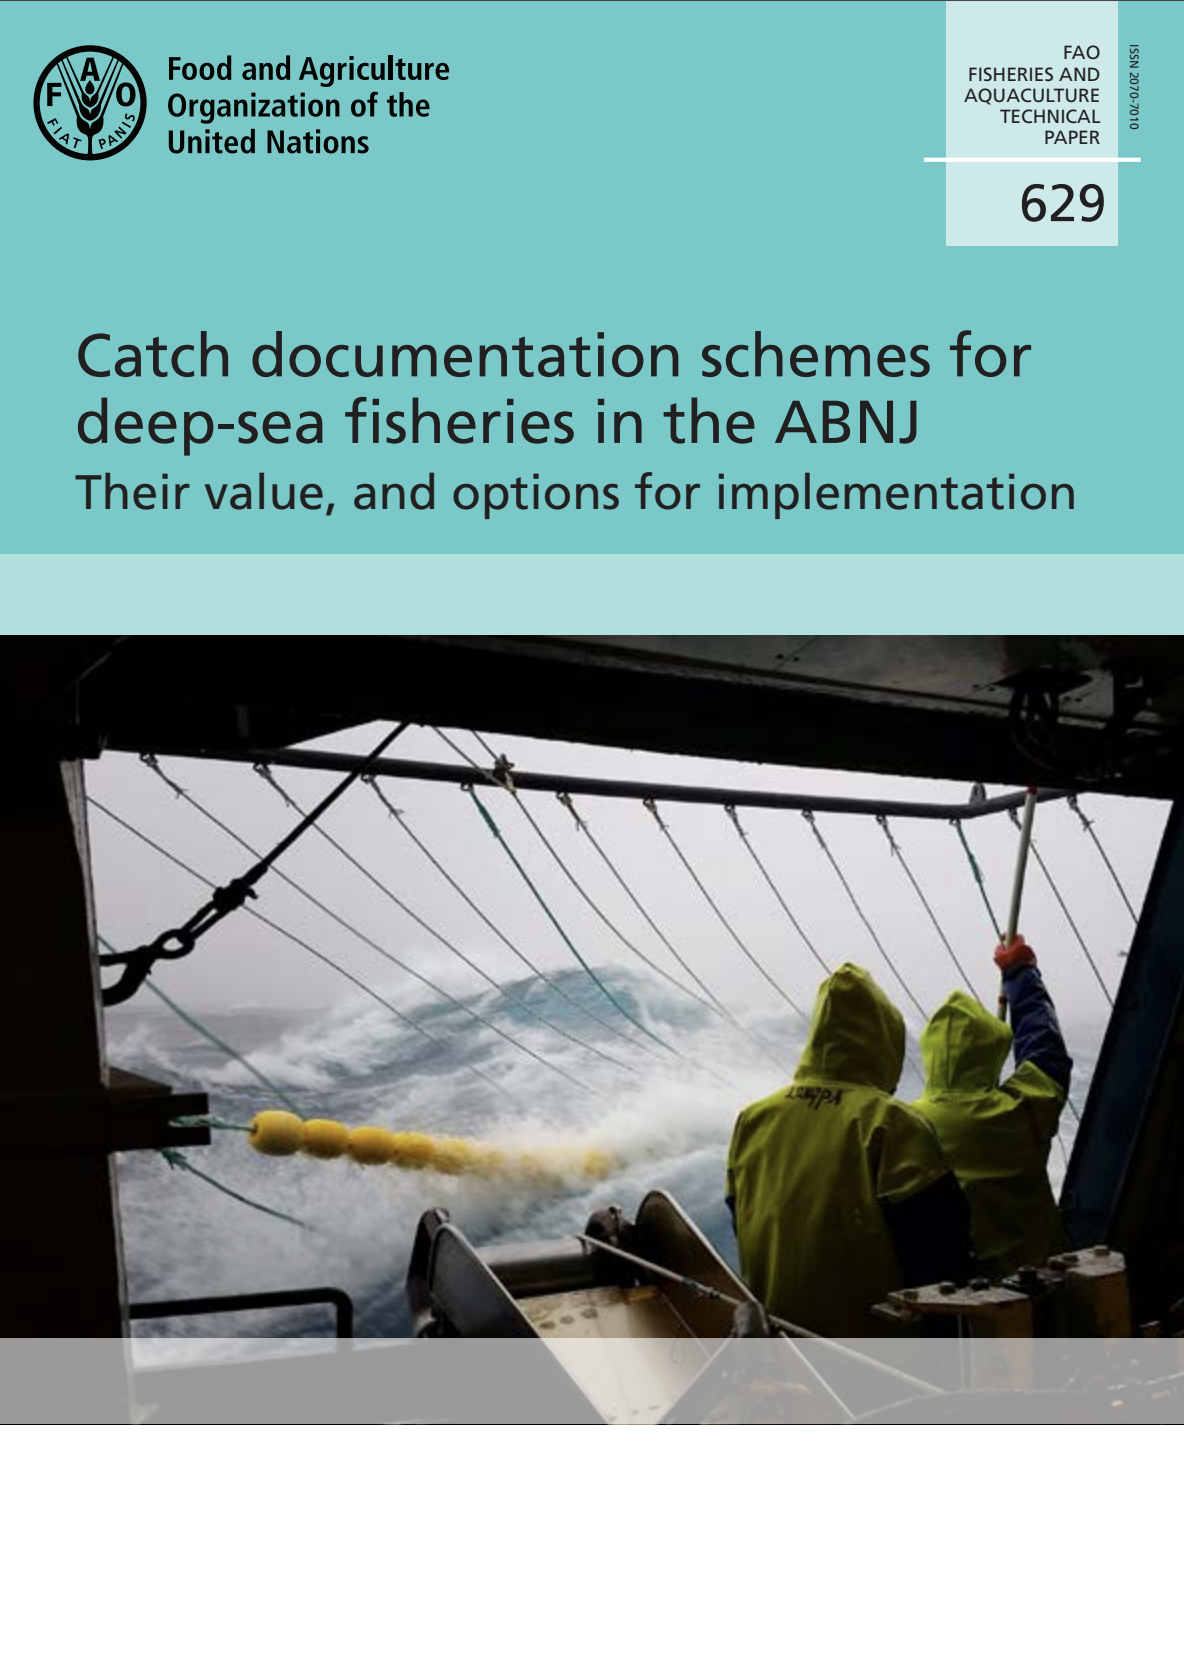 Catch documentation schemes for deep-seas fisheries in the ABNJ, their value and options for implementation